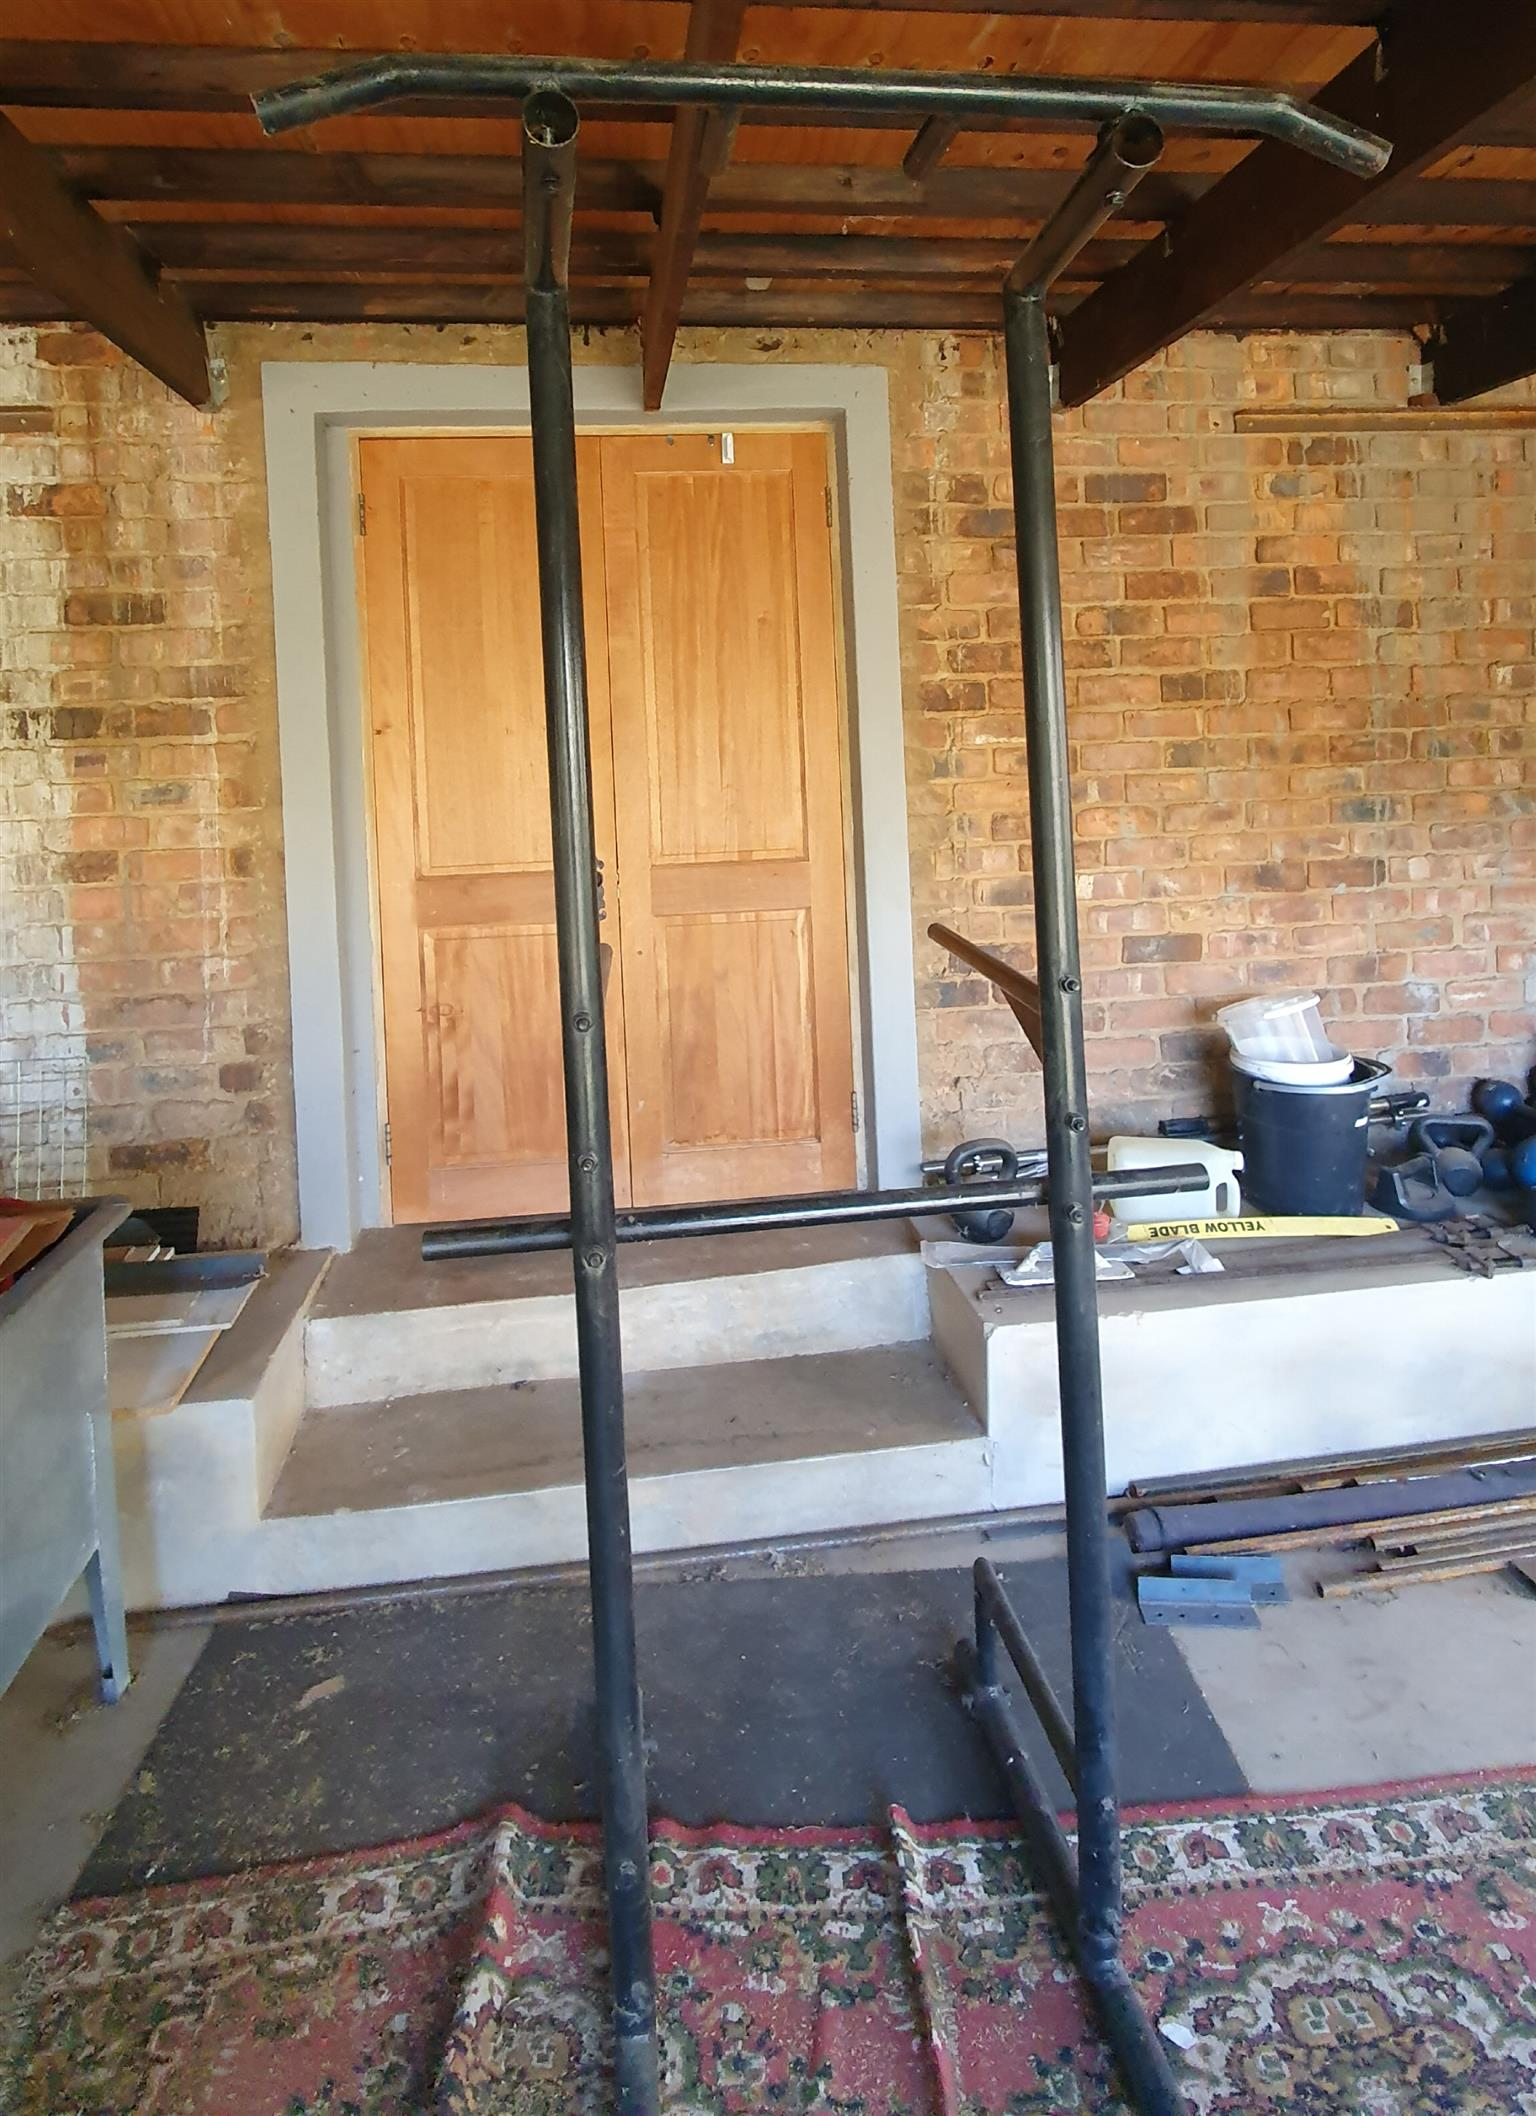 Combination pull-up and dip bar